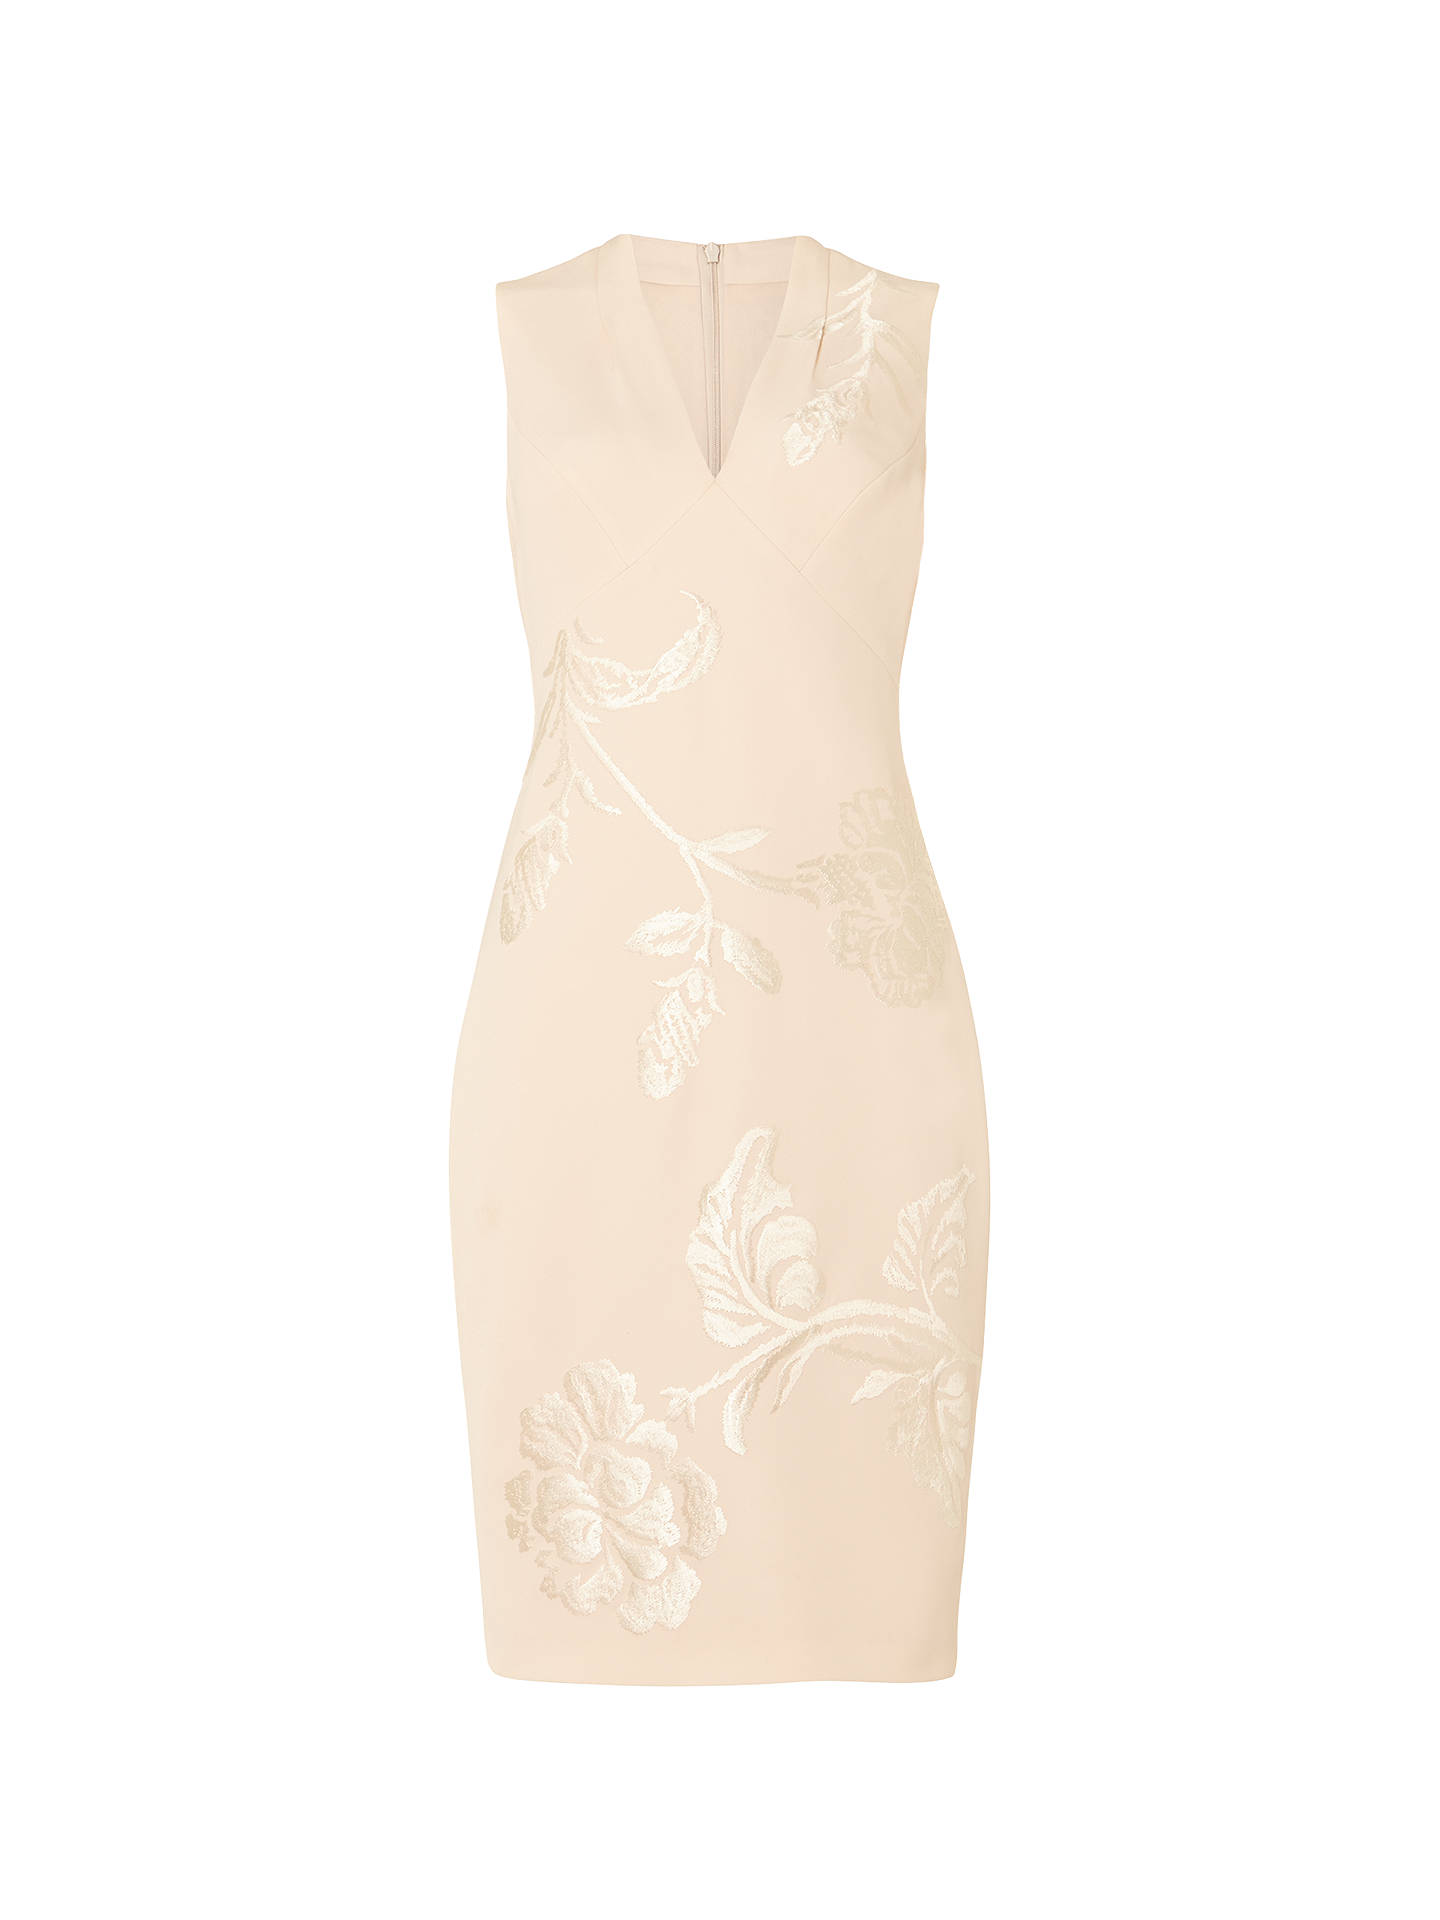 BuyPhase Eight Ruby Embroidered Dress, Cream, 10 Online at johnlewis.com